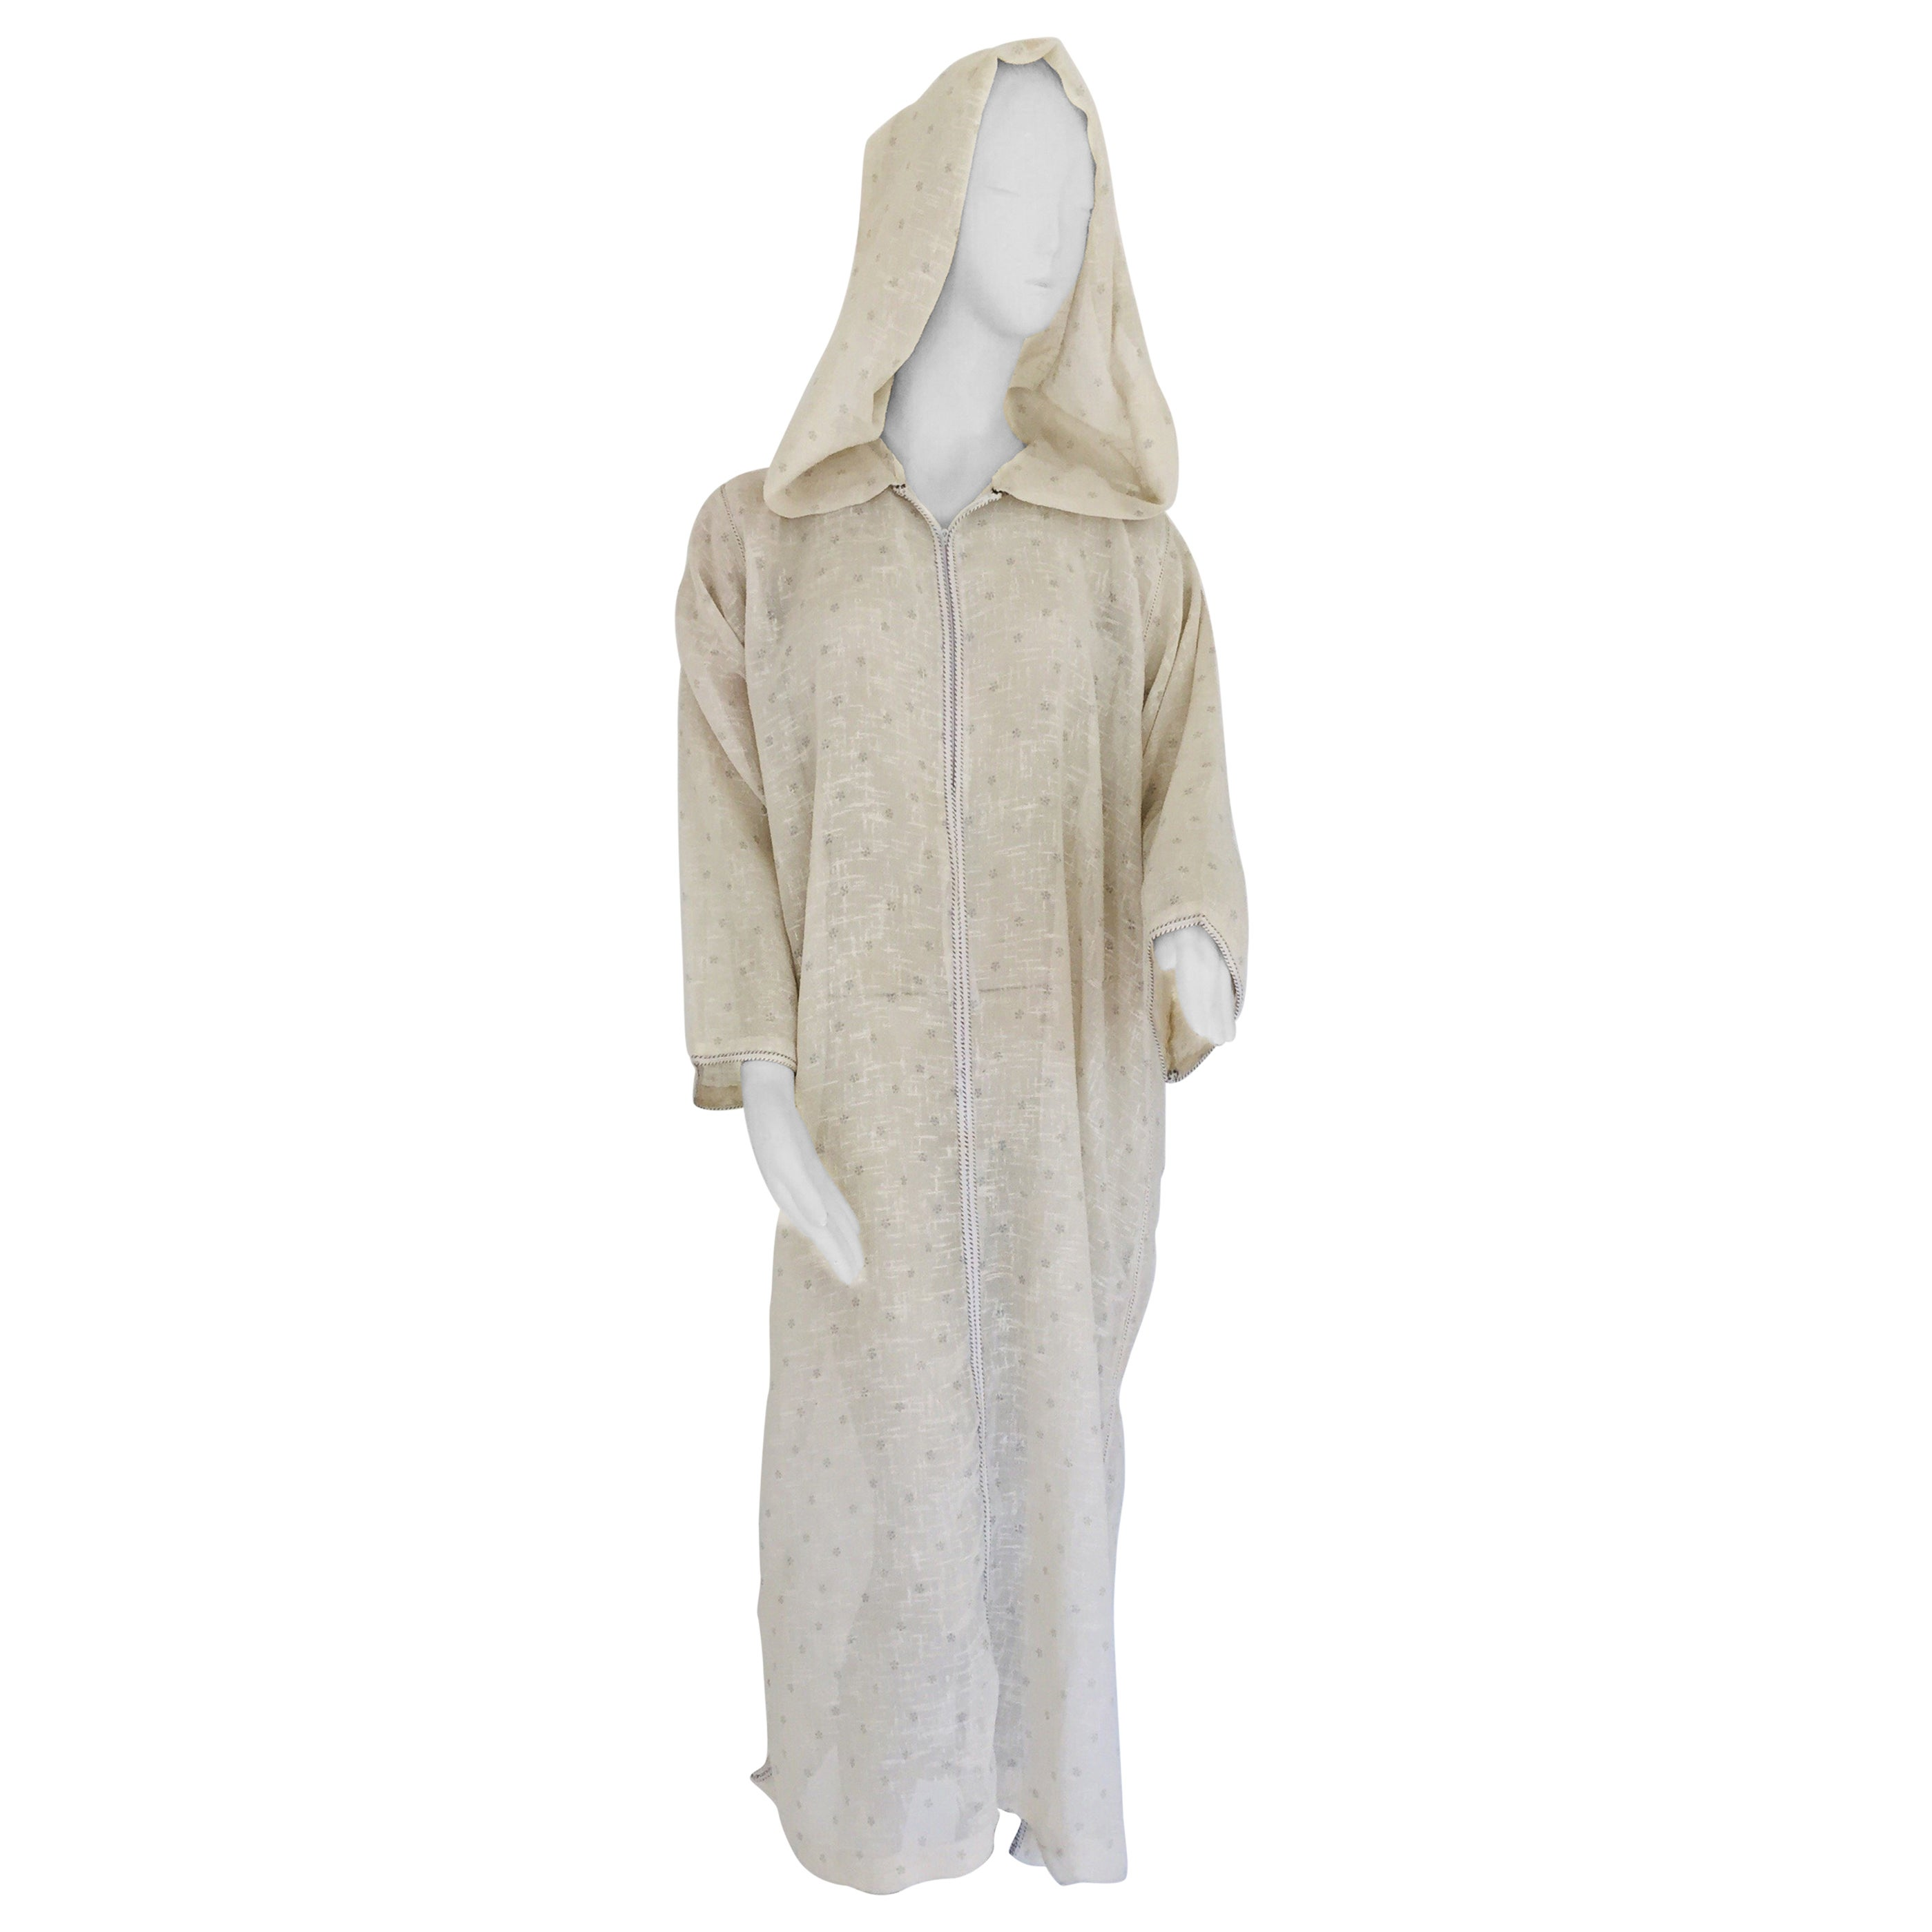 ed5ccd98d 1970 Moroccan Hooded Caftan White and Blue Linen Djellabah Kaftan For Sale  at 1stdibs